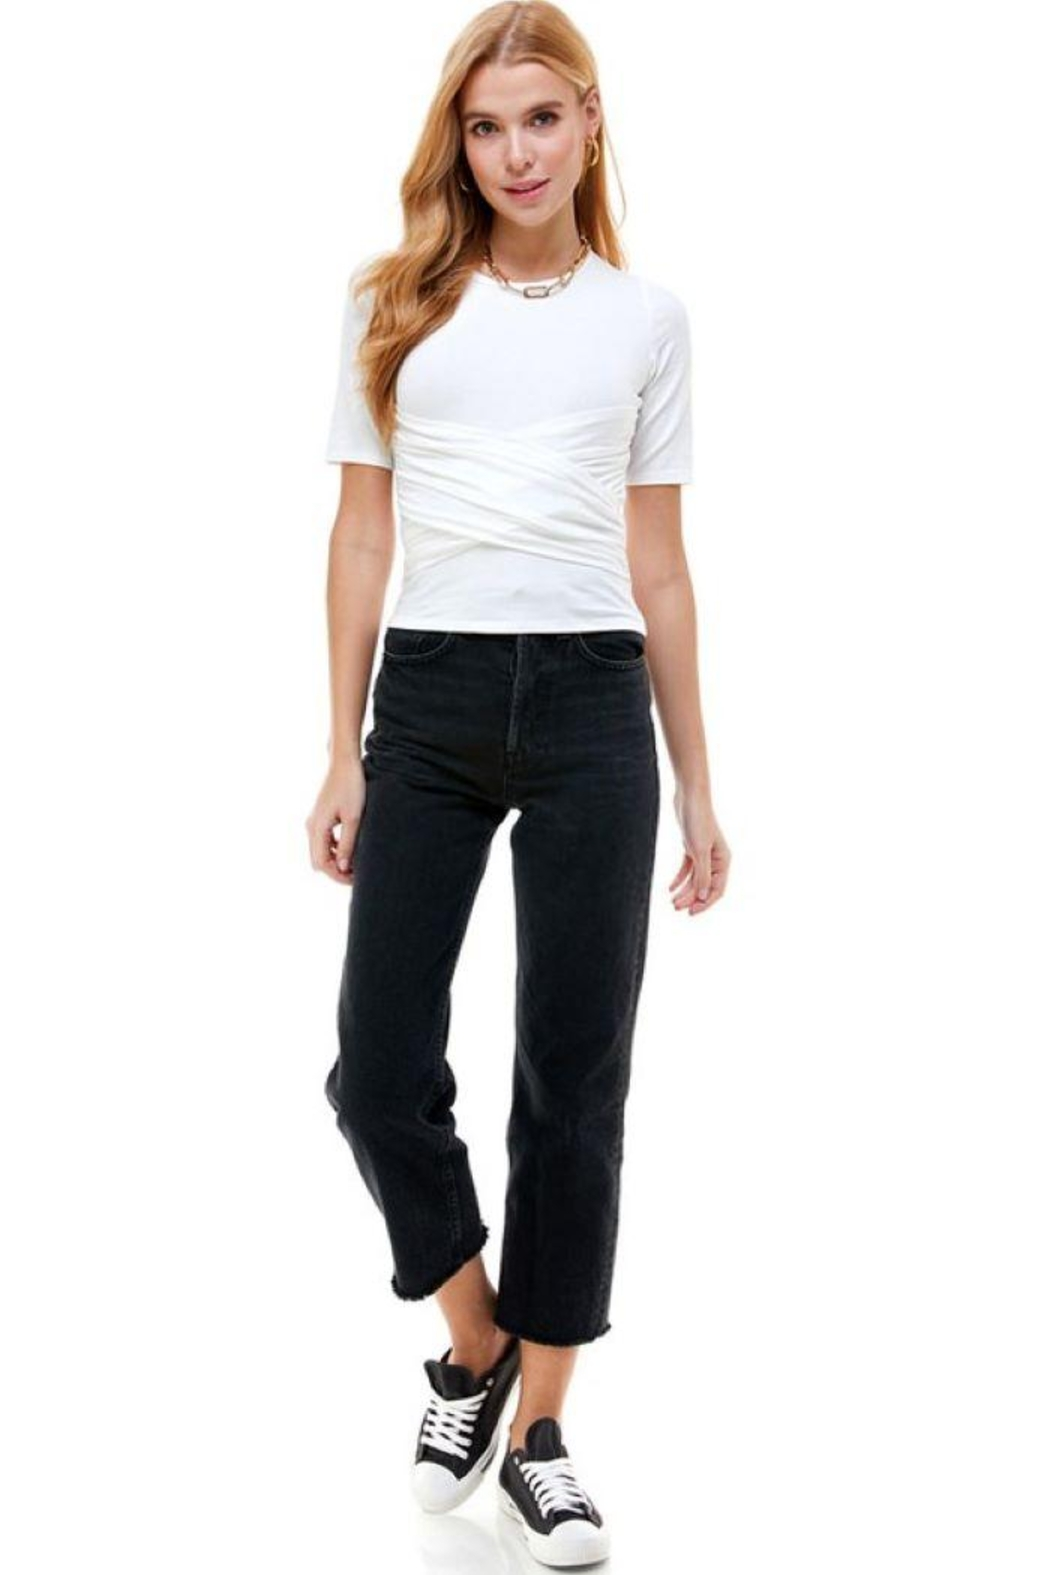 ACOA Wrap Front Detail Knit Short Sleeve Top - Front Cropped Image